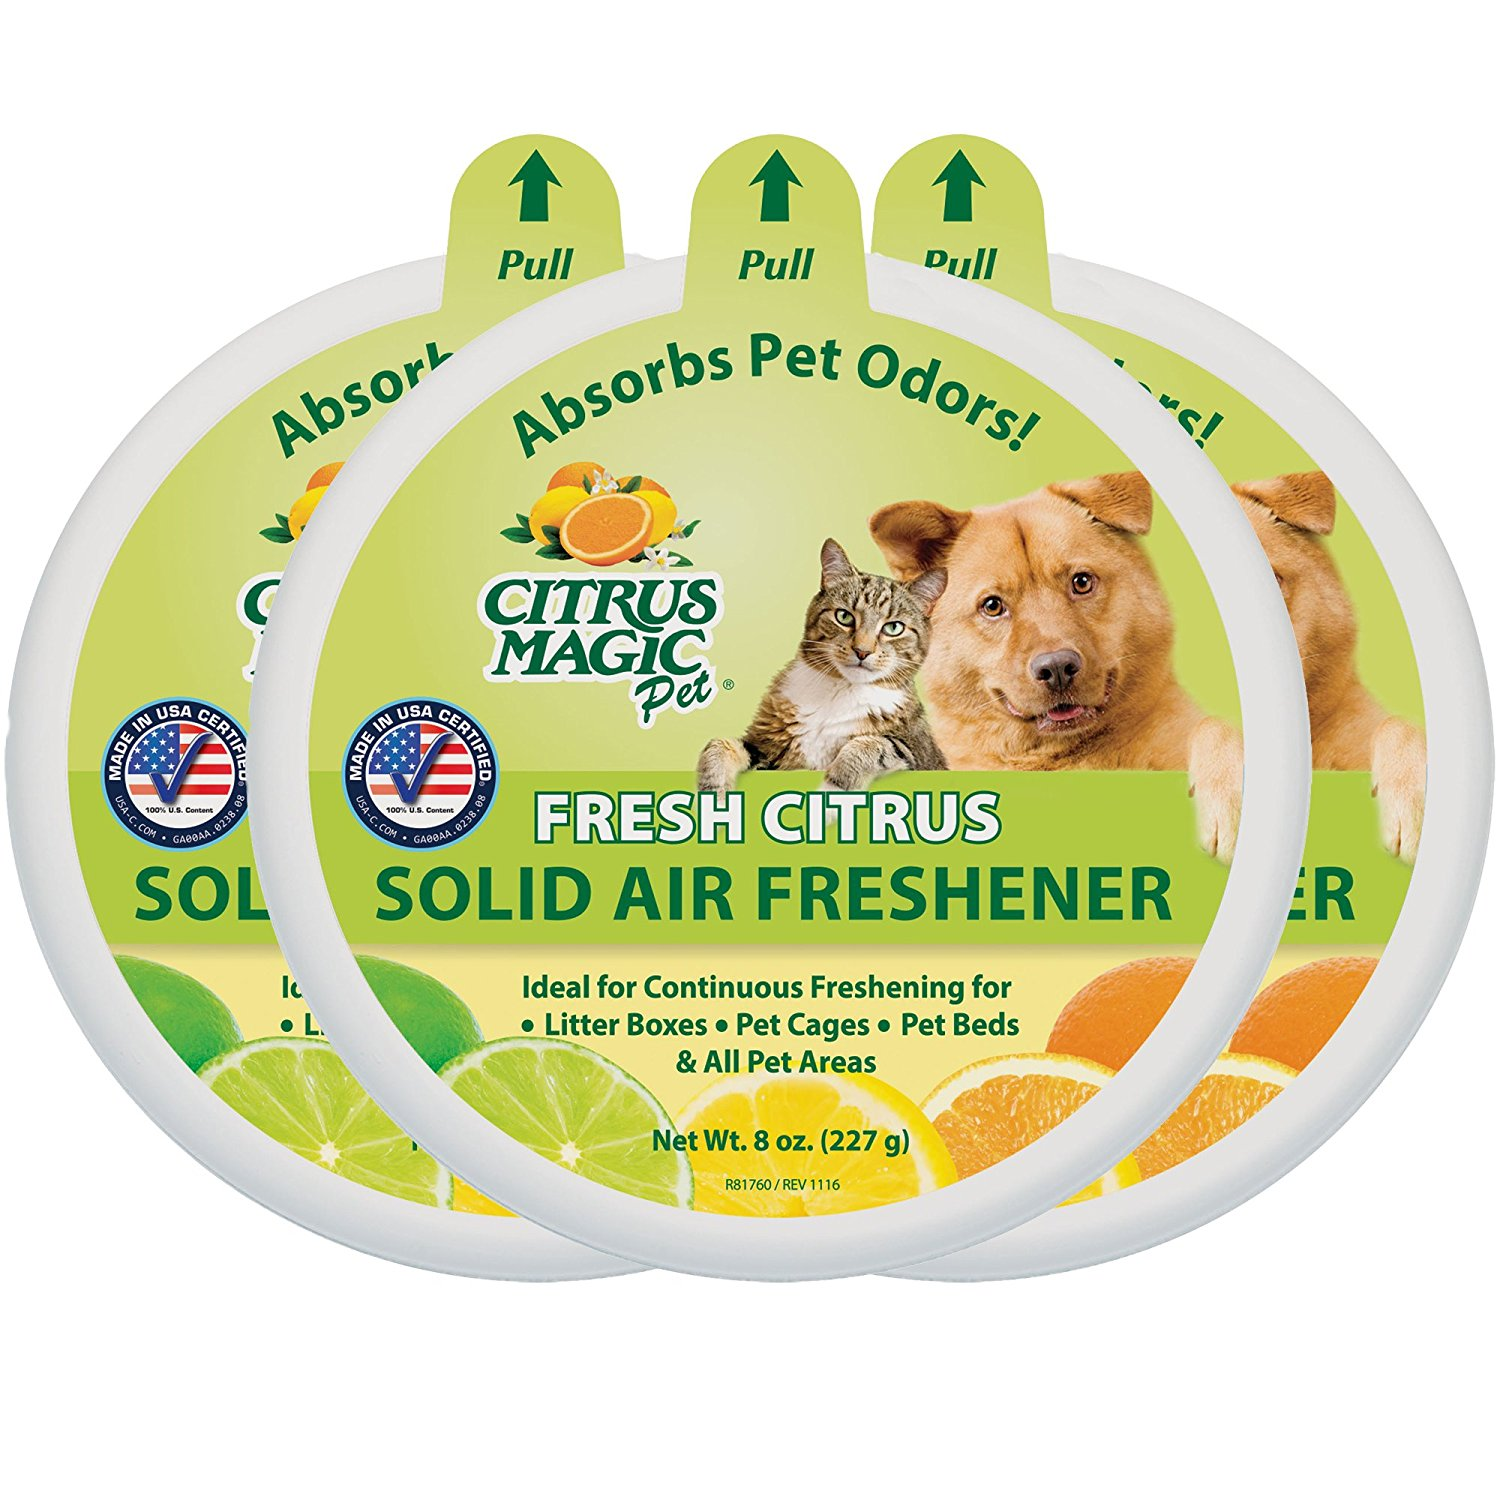 Citrus Magic Pet Odor Absorbing Solid Air Freshener, Fresh Citrus, Pack of 3, 8-Ounces Each